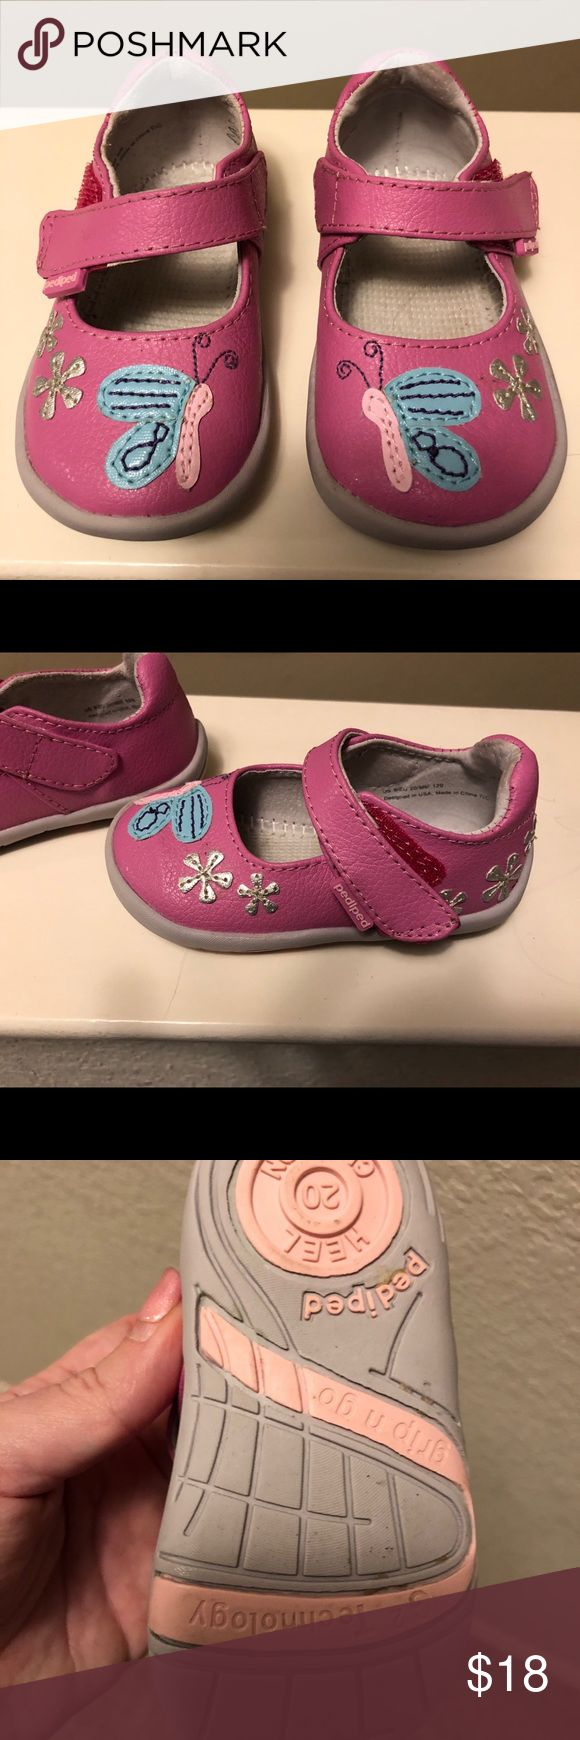 Pediped darling pink butterfly Mary Janes Pediped size 20 darling pink butterfly Mary Janes in excellent used condition. My daughter loved these but grew out of them too quickly (Mama should have bought a size bigger). I have the box for these as well. pediped Shoes Baby & Walker